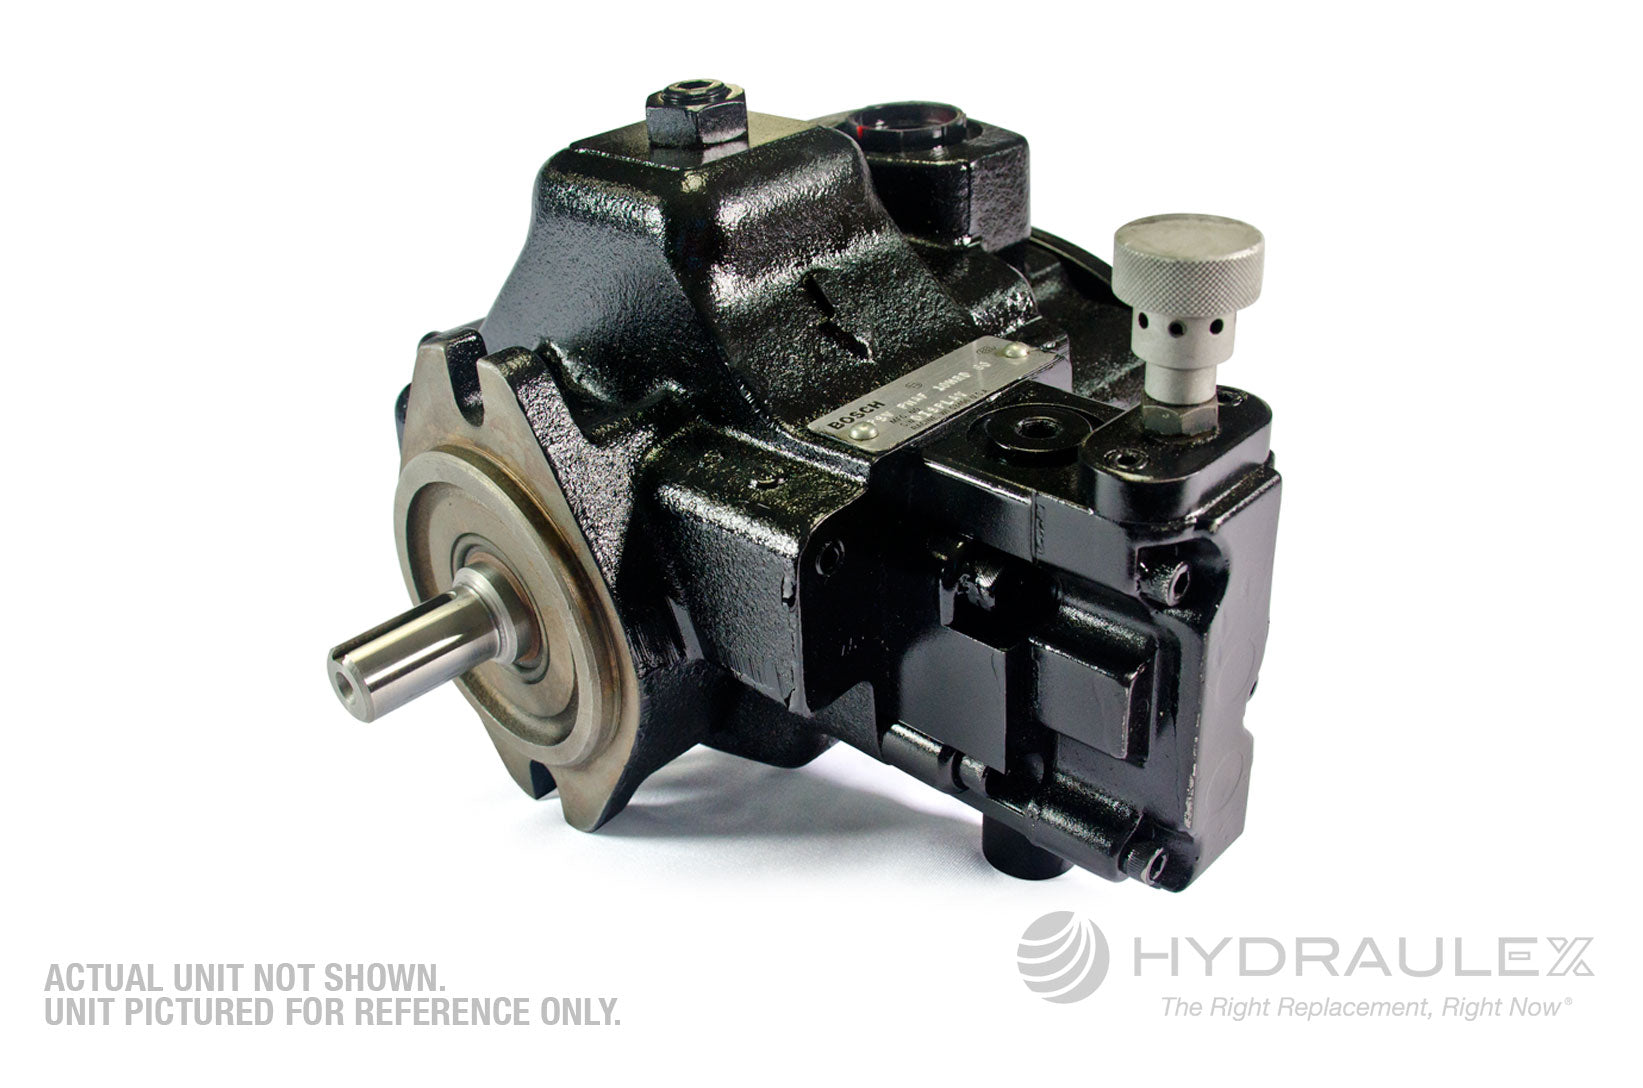 PSV-PNSF-20HRD-56 Bosch Rexroth Variable Vane Pump